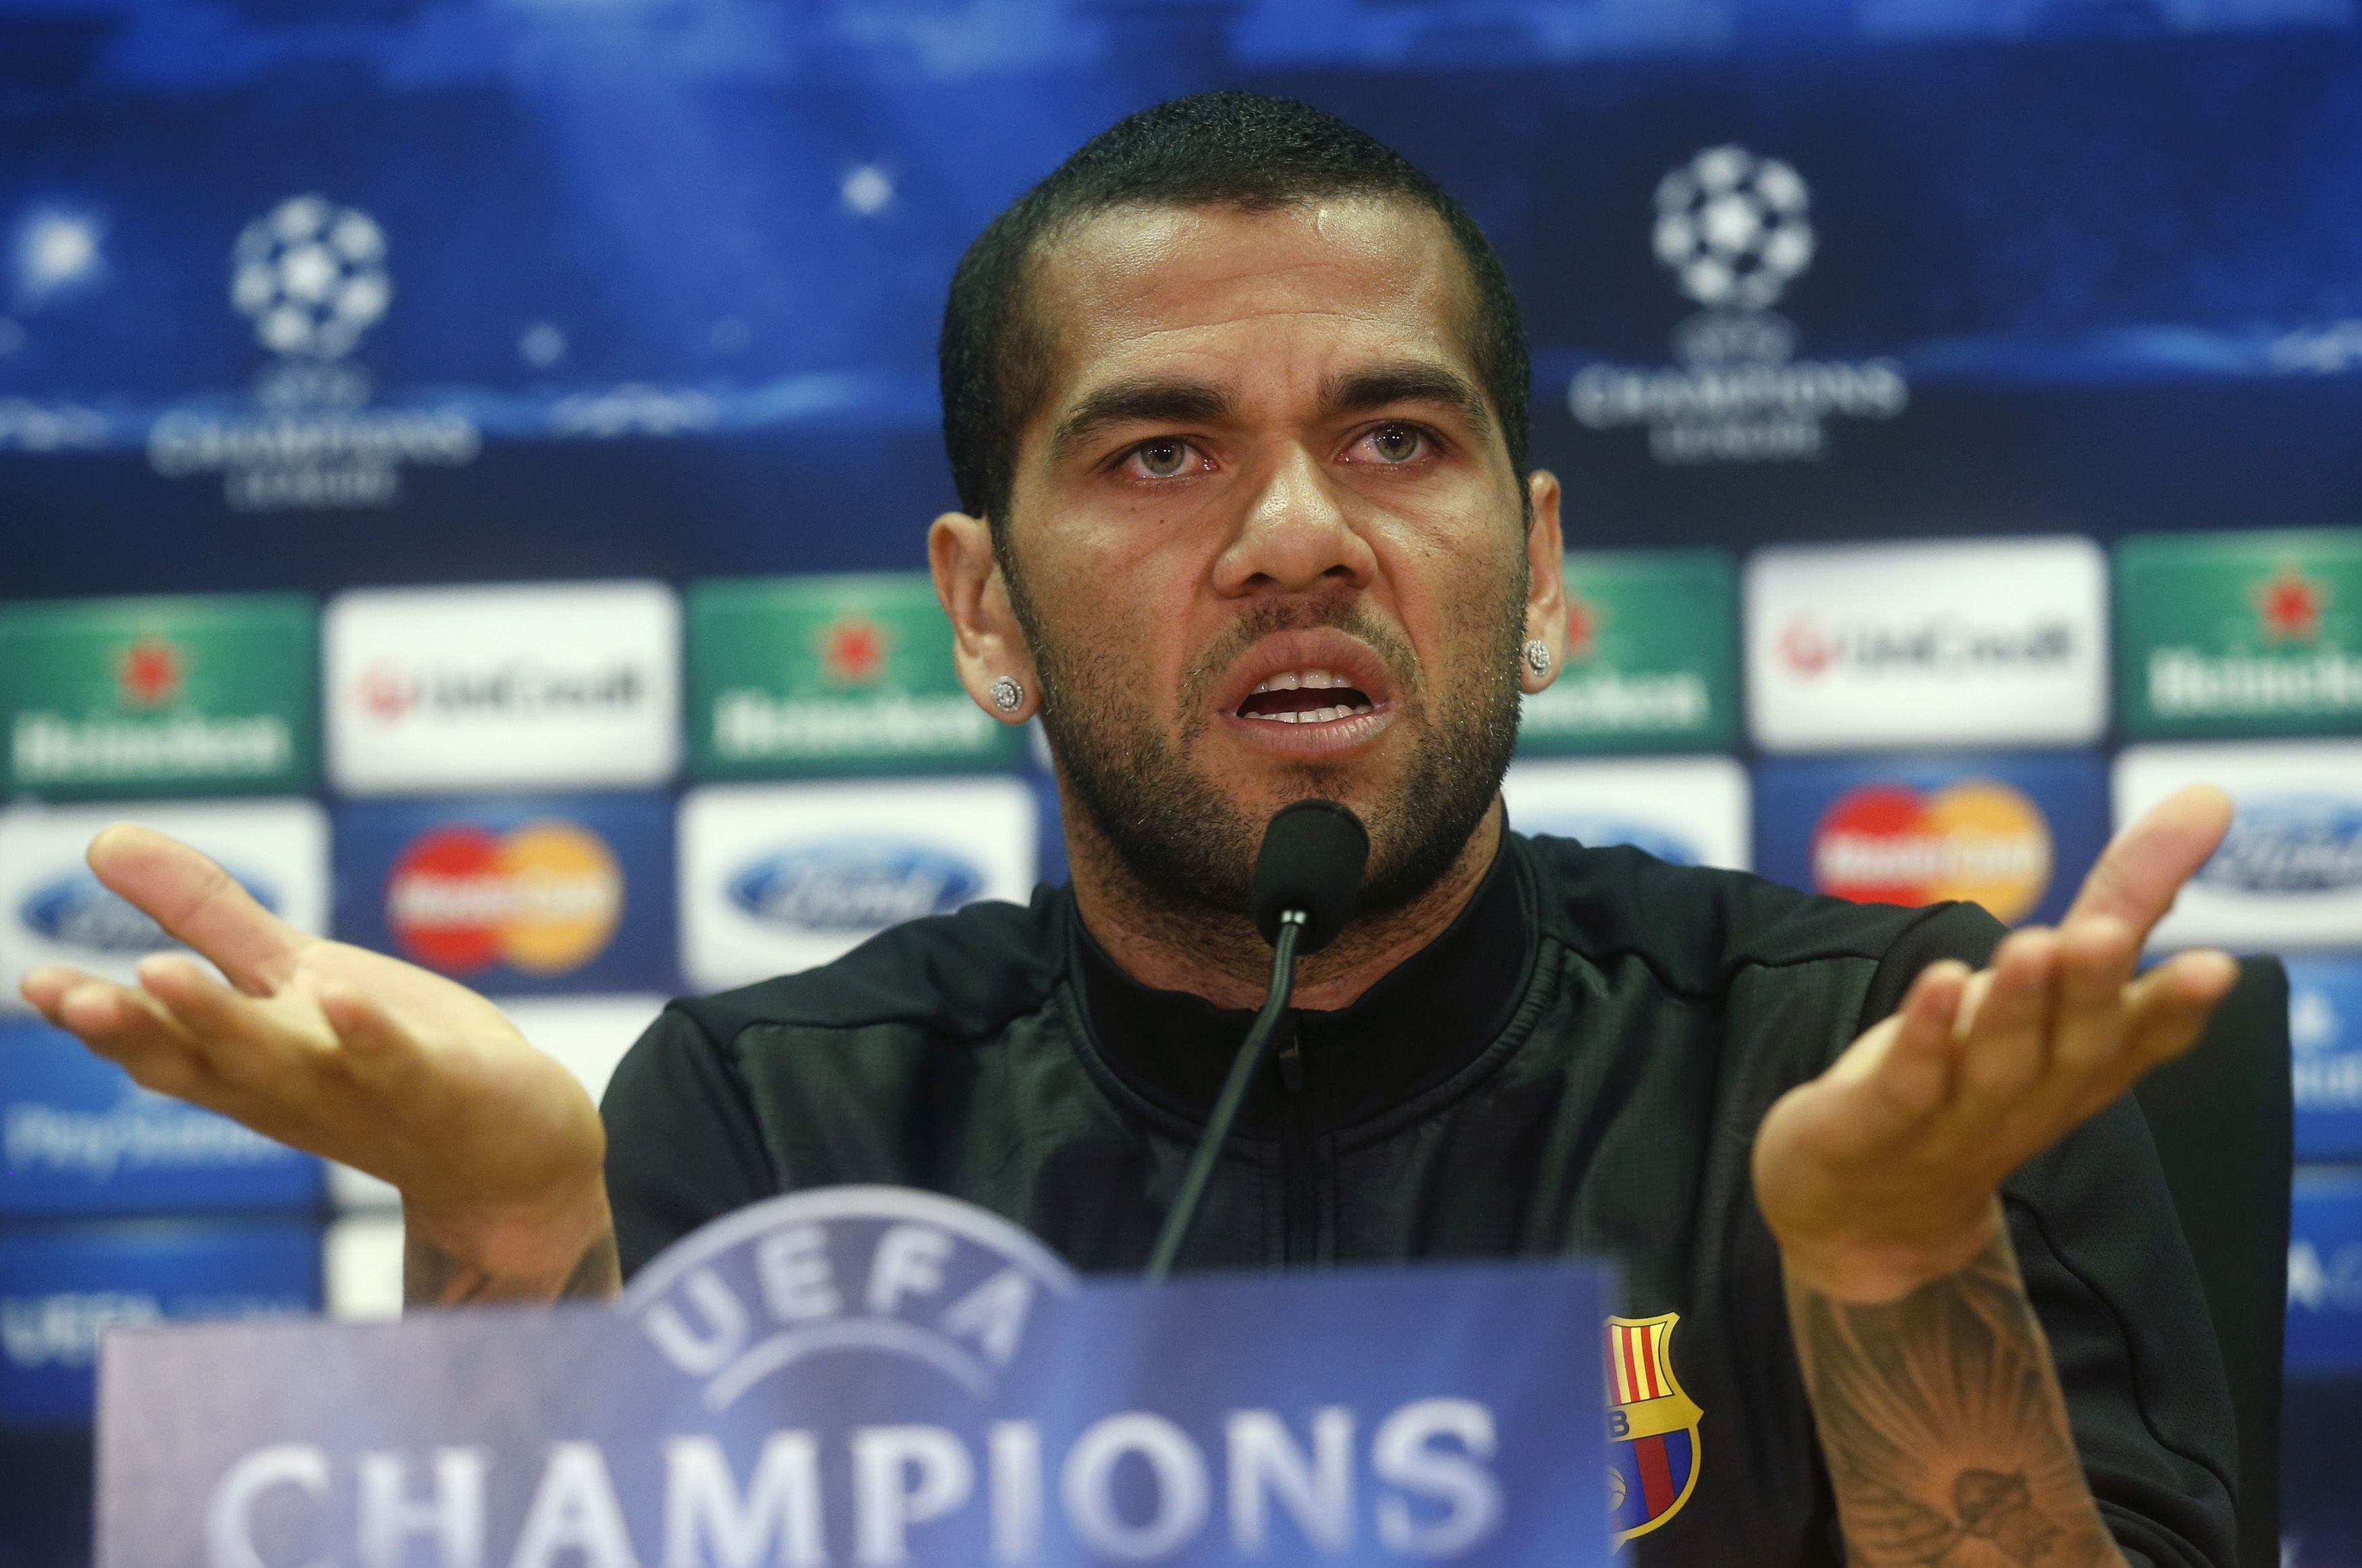 WEB_PHOTO_DANIALVES_28042014